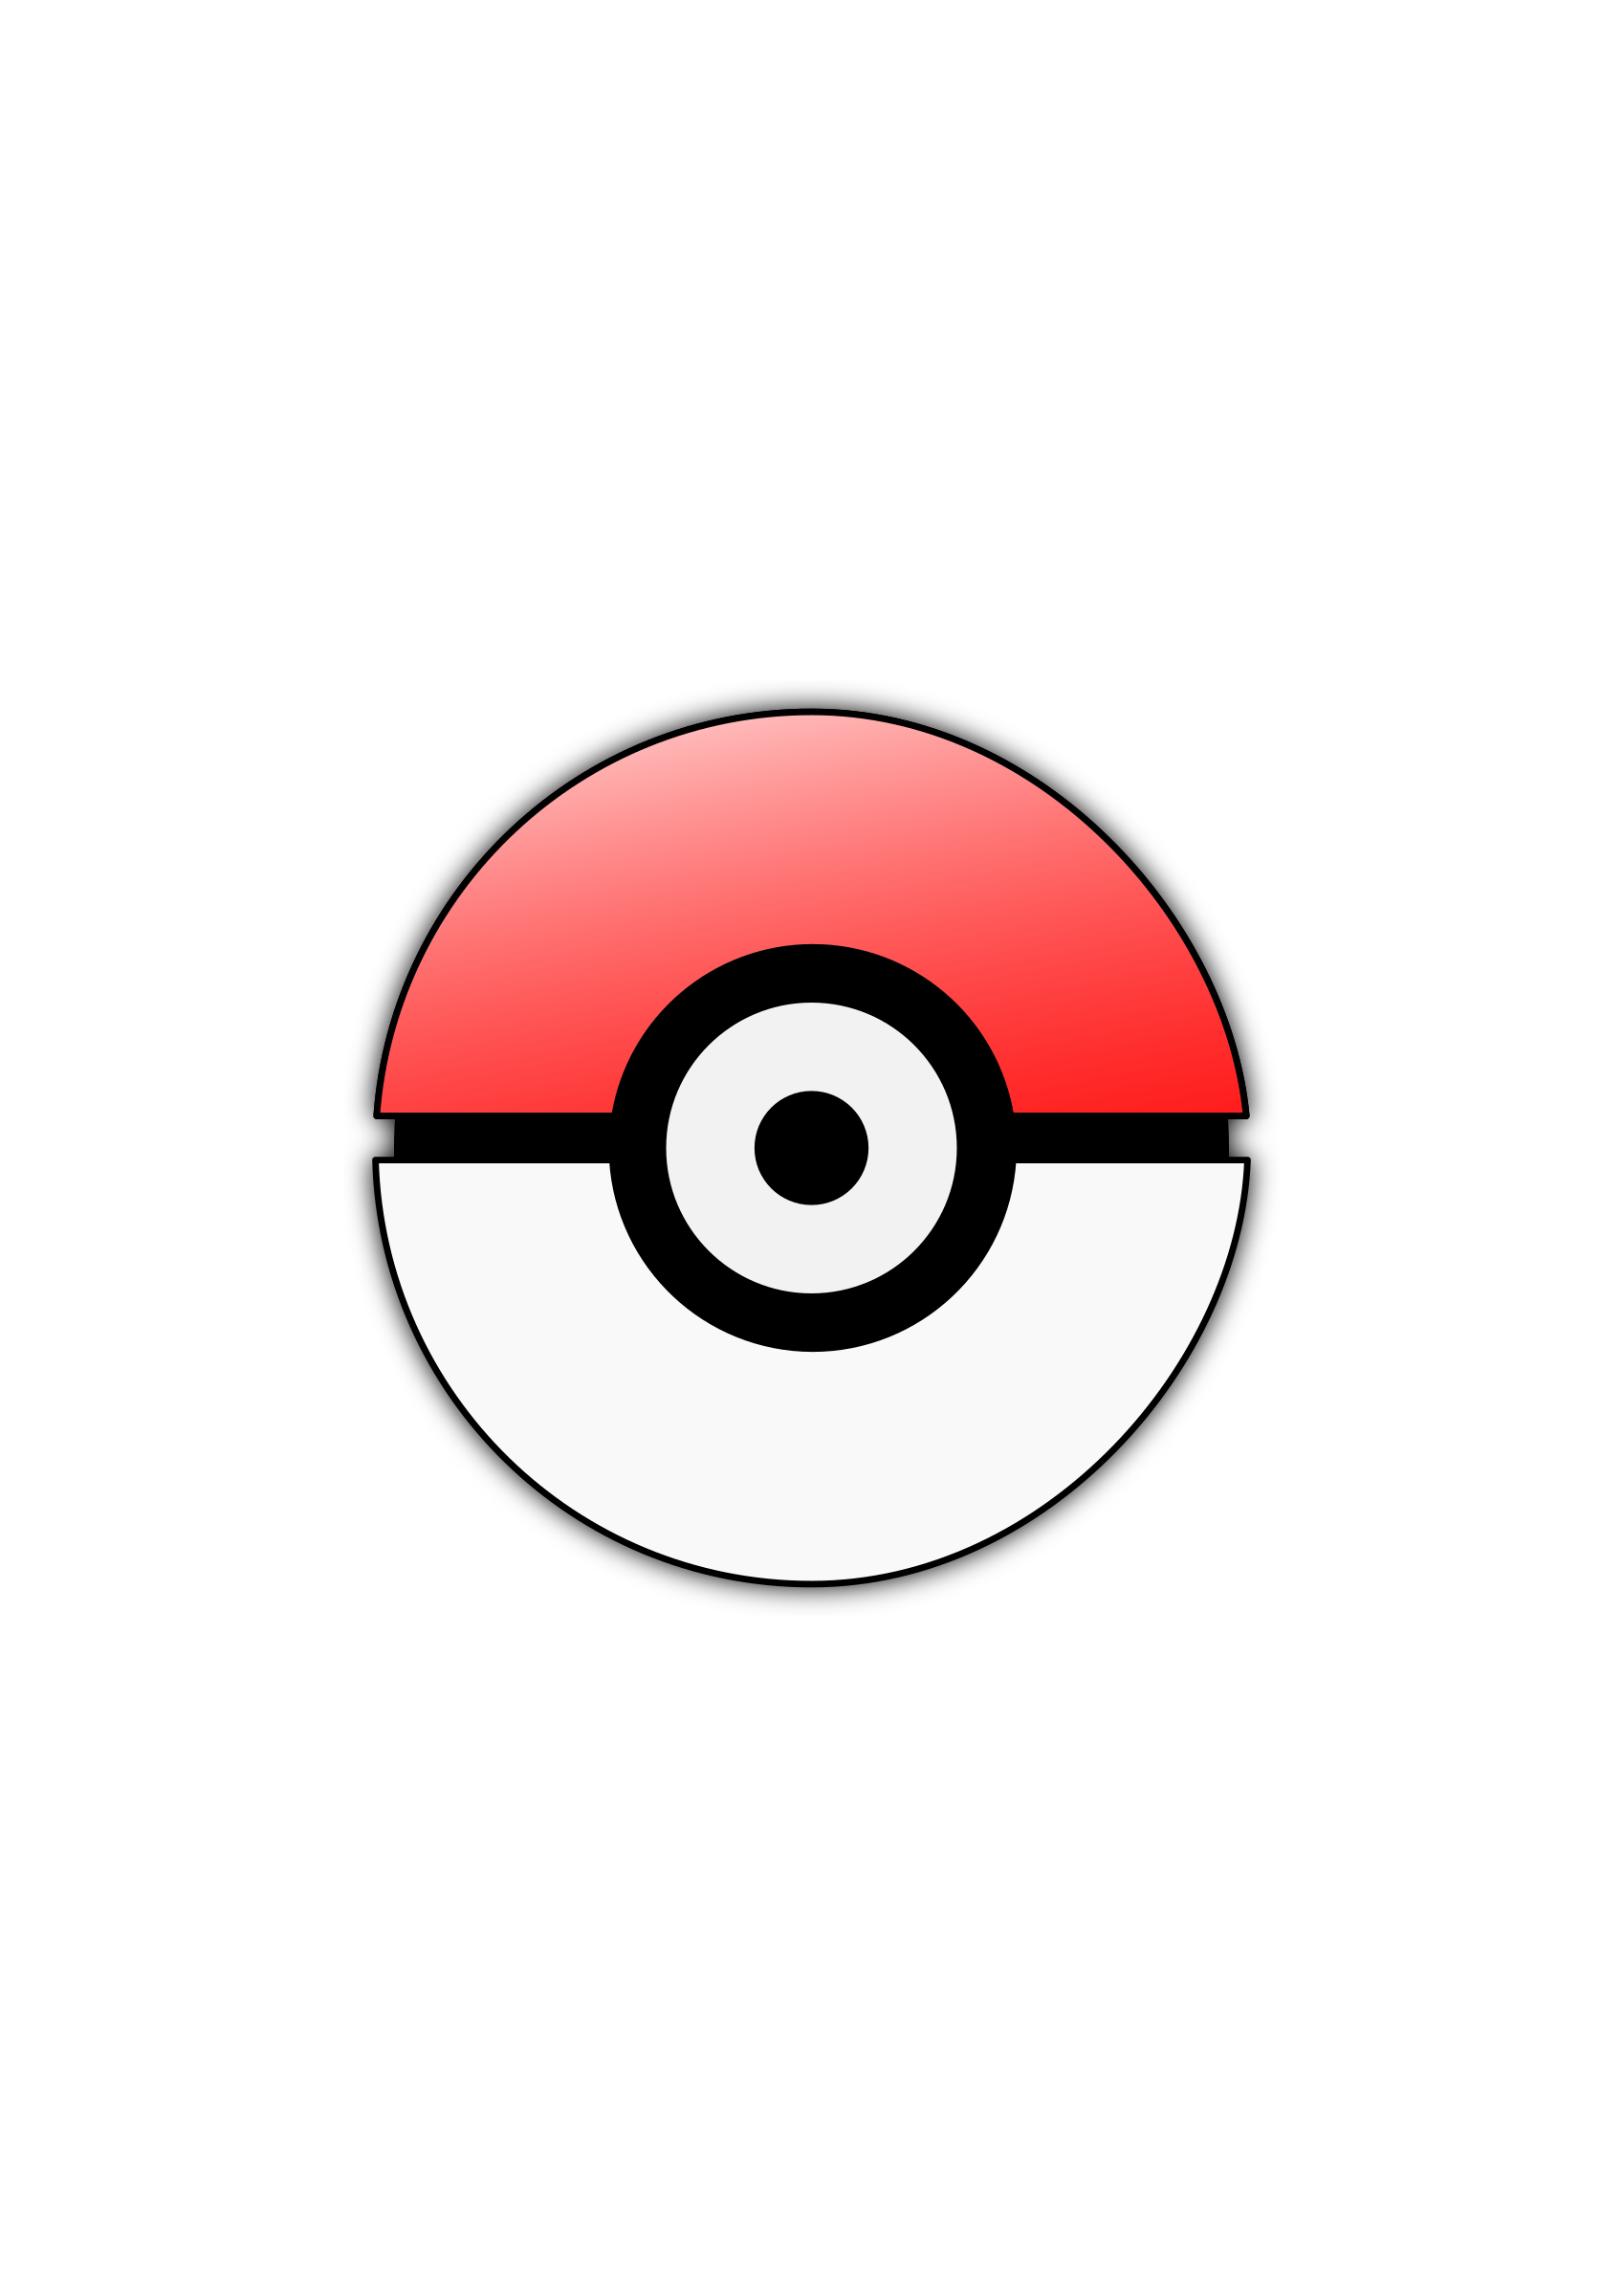 Clipart Pokeball image #45351